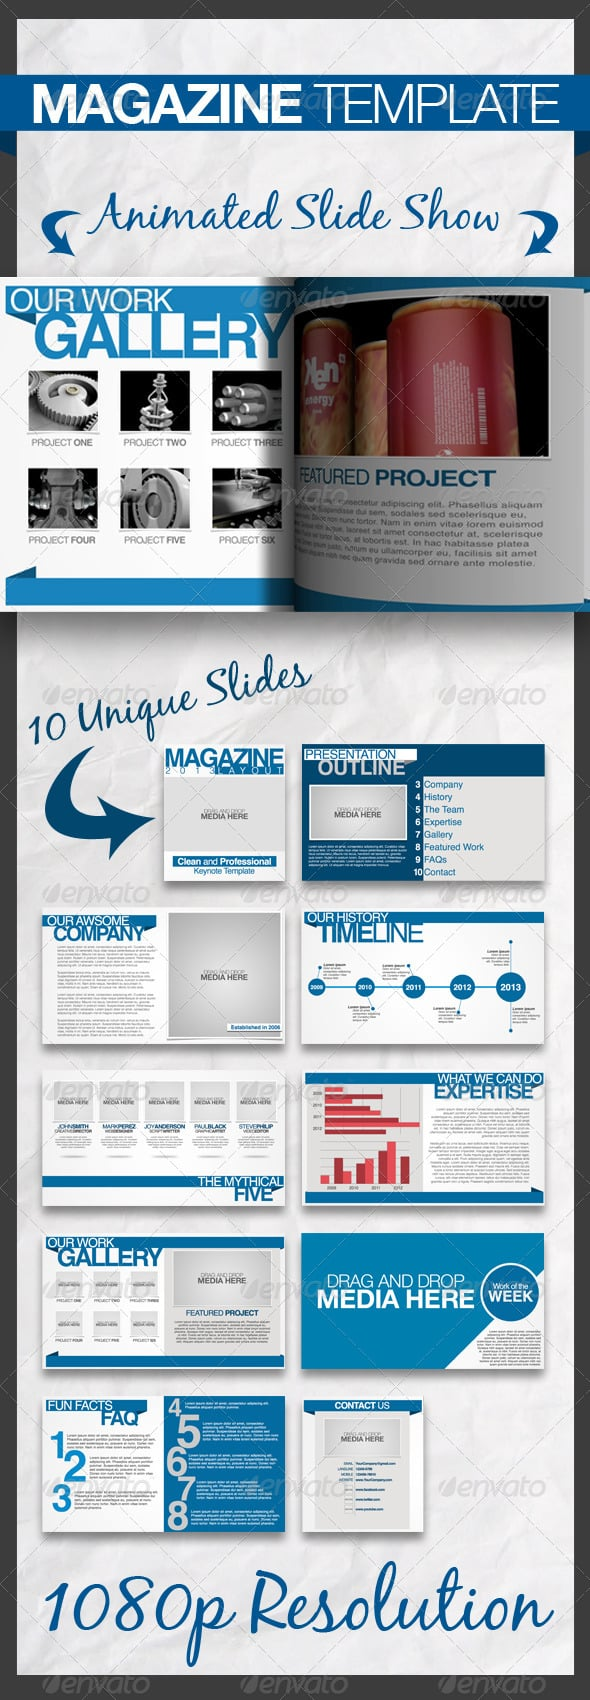 Magazine-Keynote-Presentation-Template